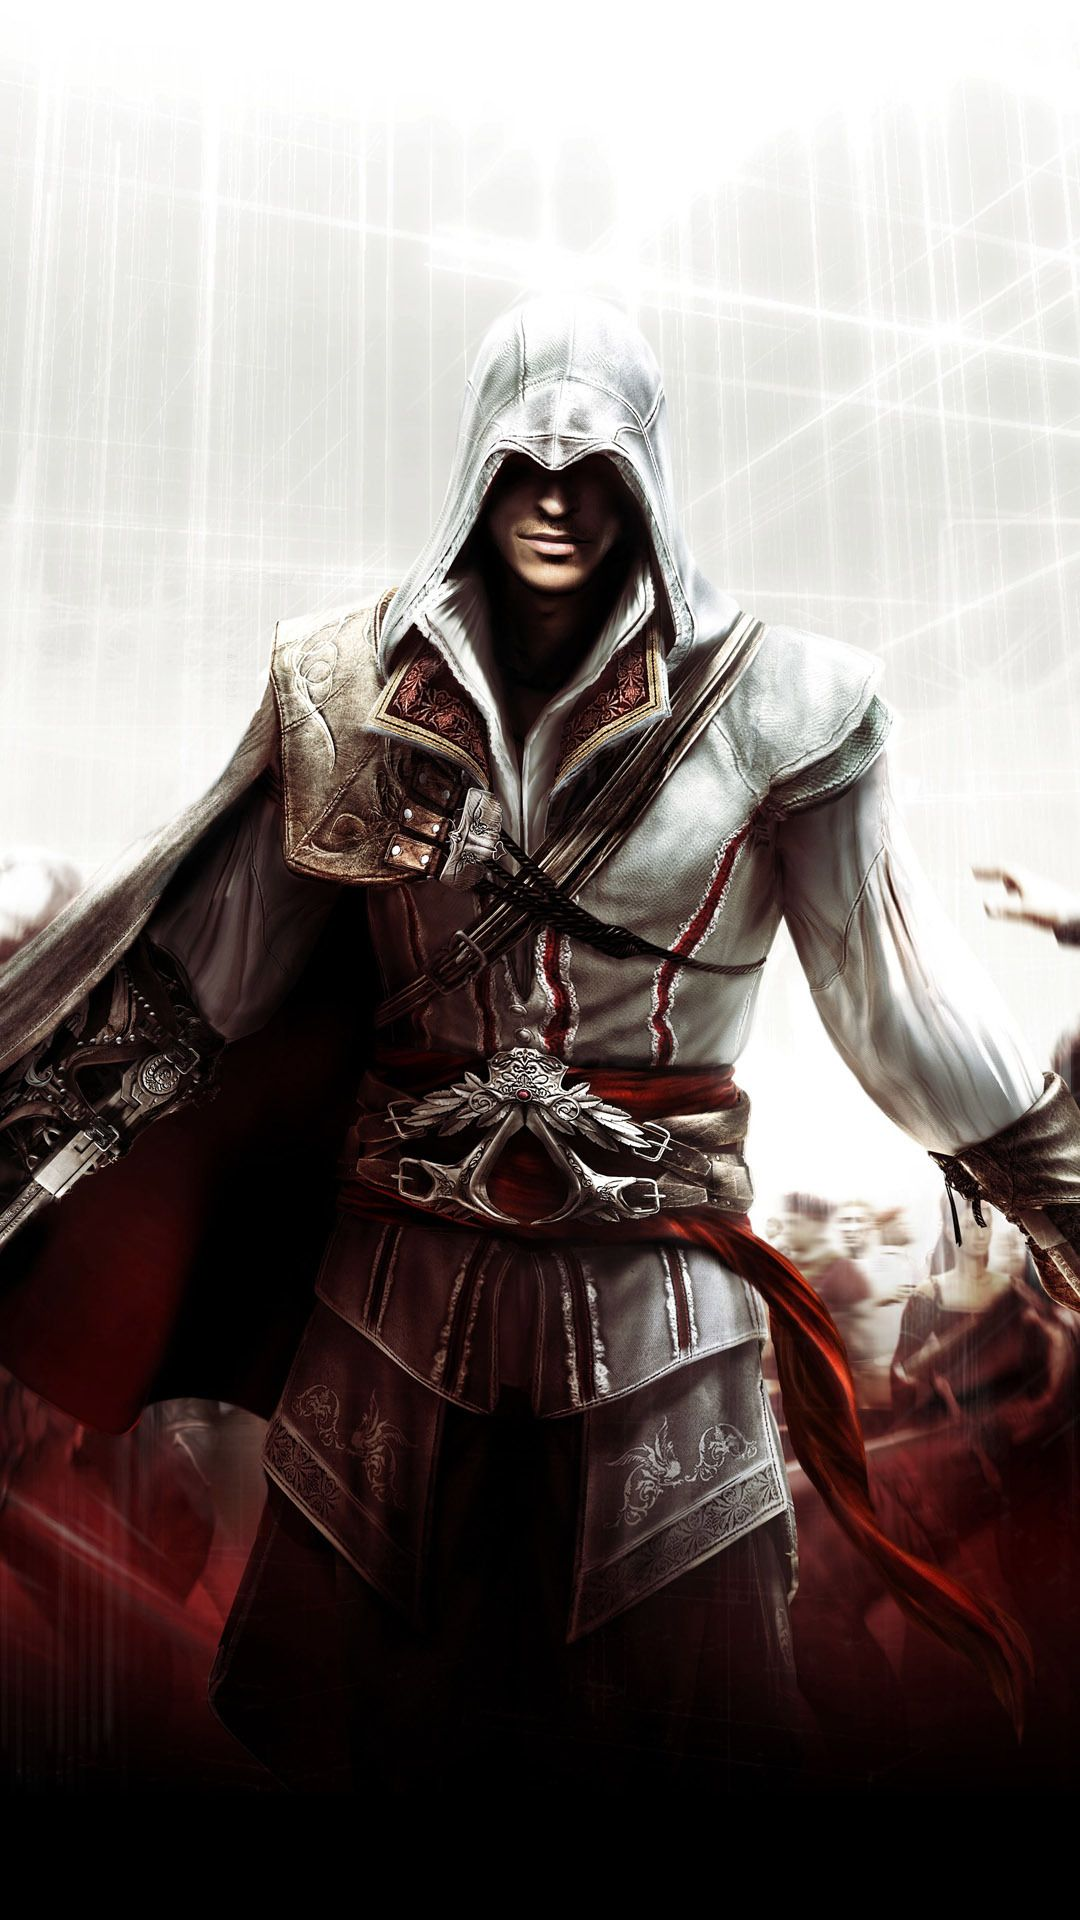 Ezio Assassins Creed Ii Mobile Wallpaper 9891 Assassin S Creed